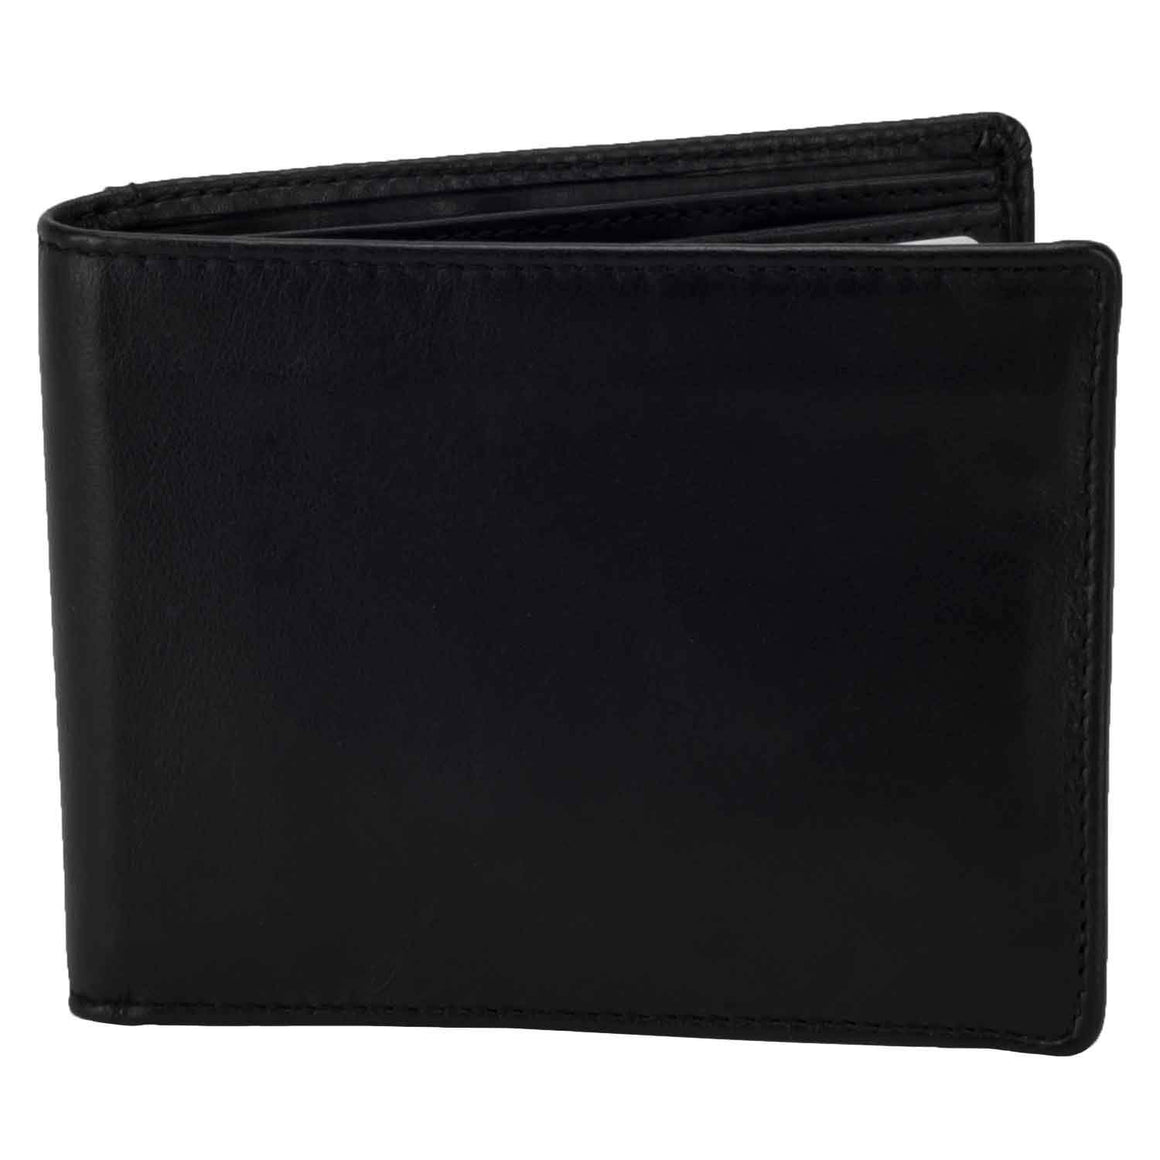 DiLoro Slim Bifold Leather Wallet with Back Slip Pocket and RFID Protection - back view